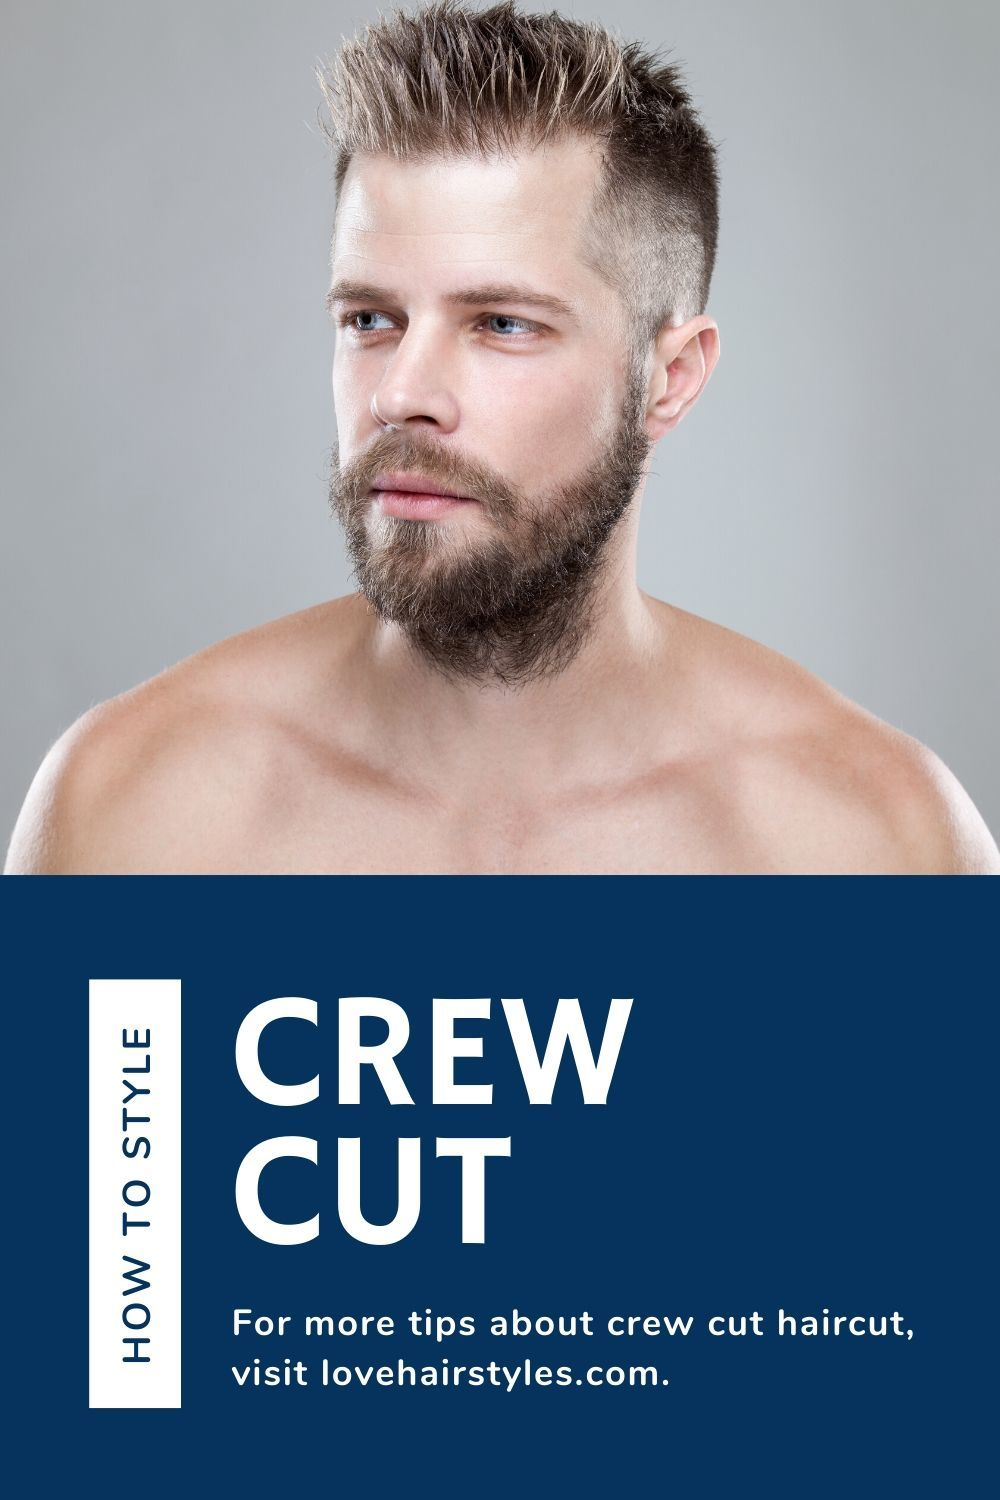 How To Style Crew Cut?